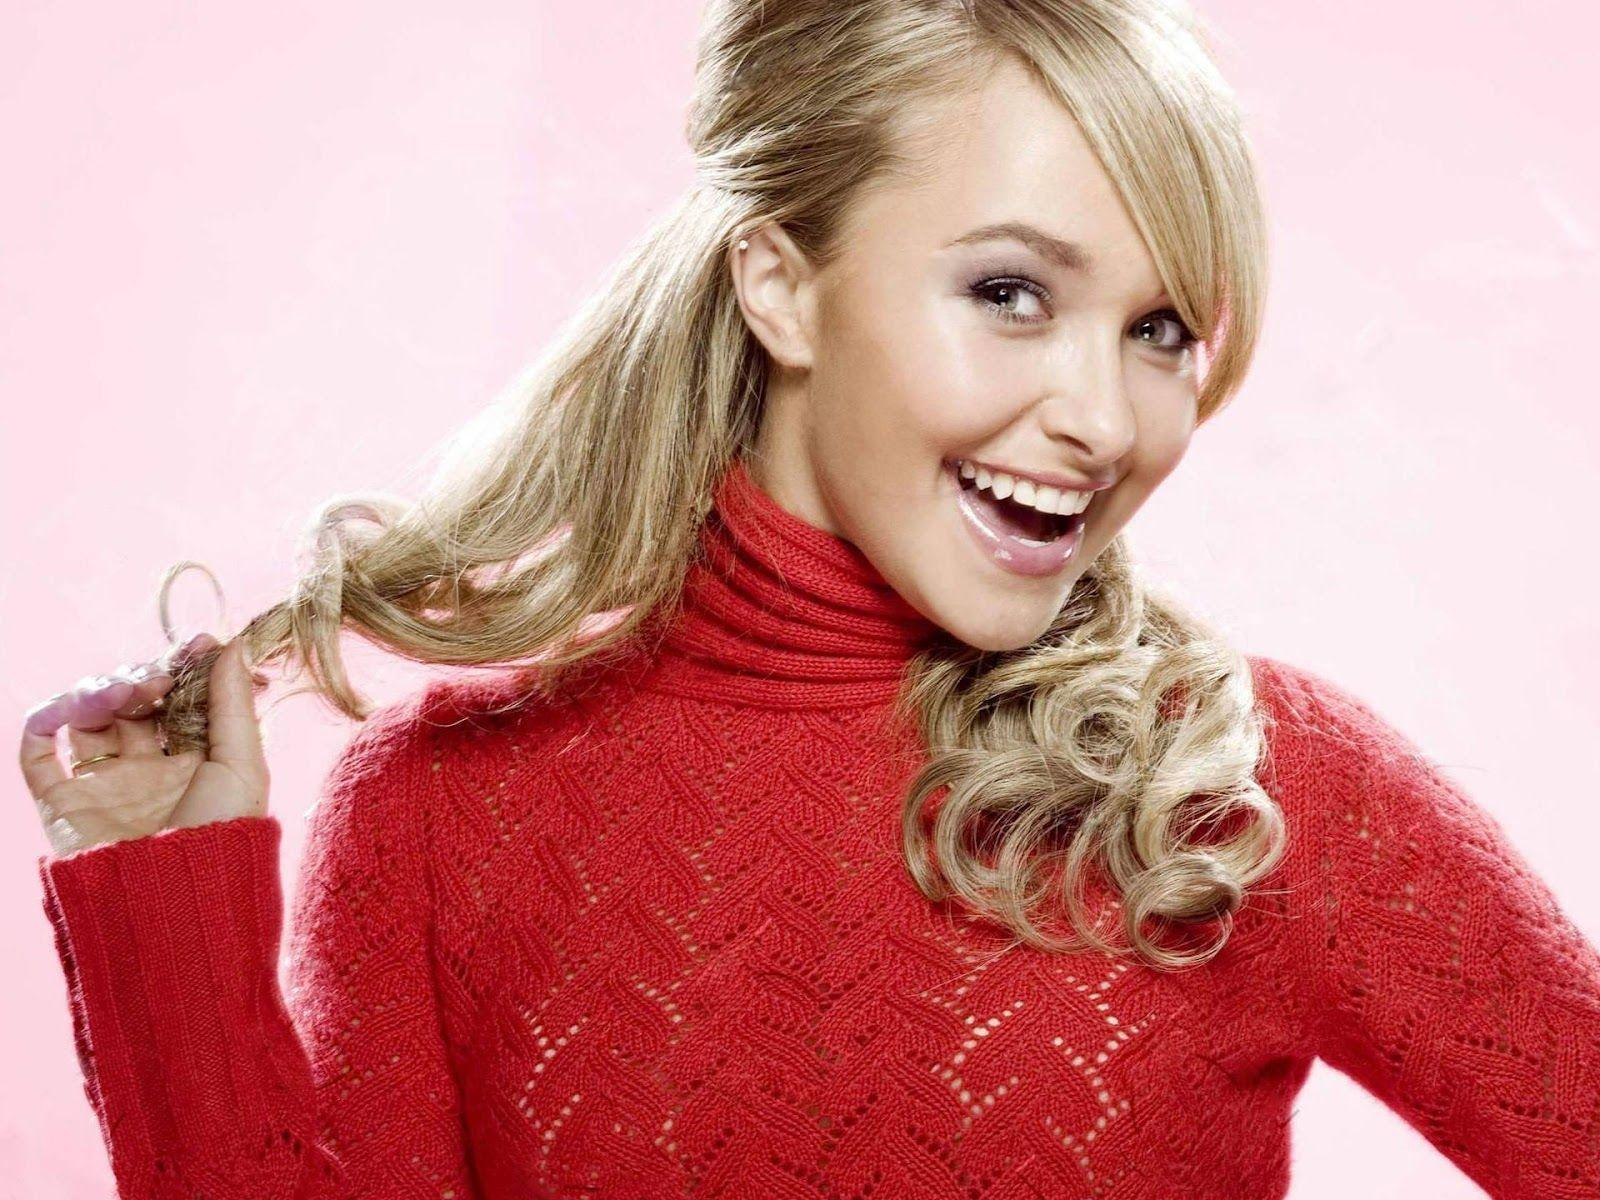 Wallpapers | Images | Picpile: Hollywood young female celebrities